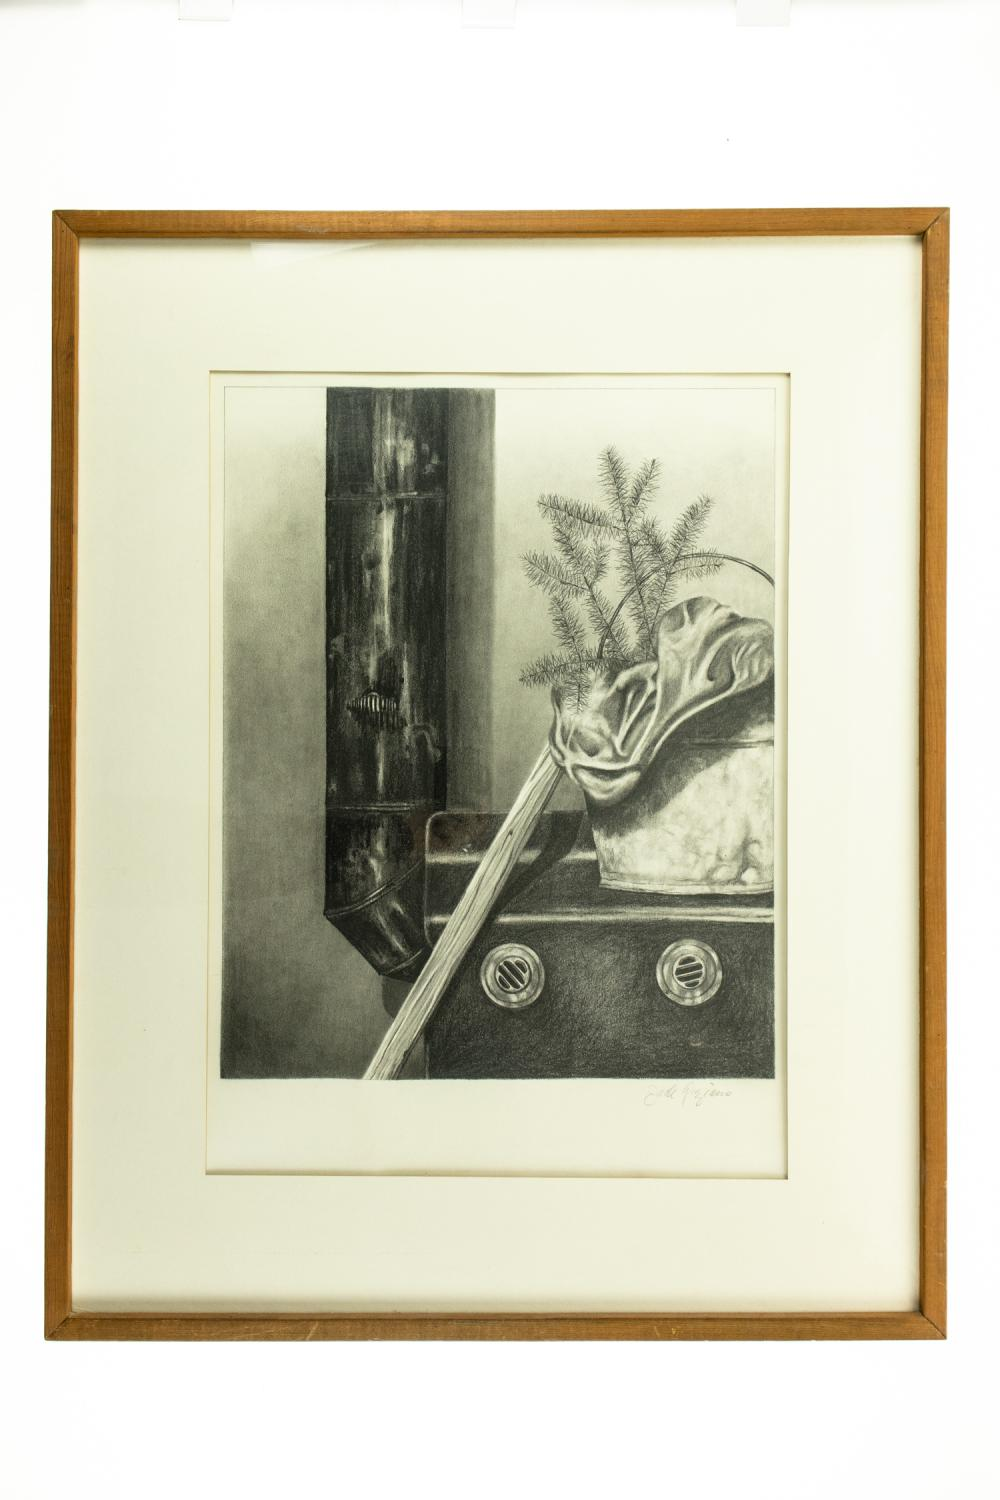 Jack Graziano WOOD STOVE ORIGINAL PENCIL/CHARCOAL DRAWING